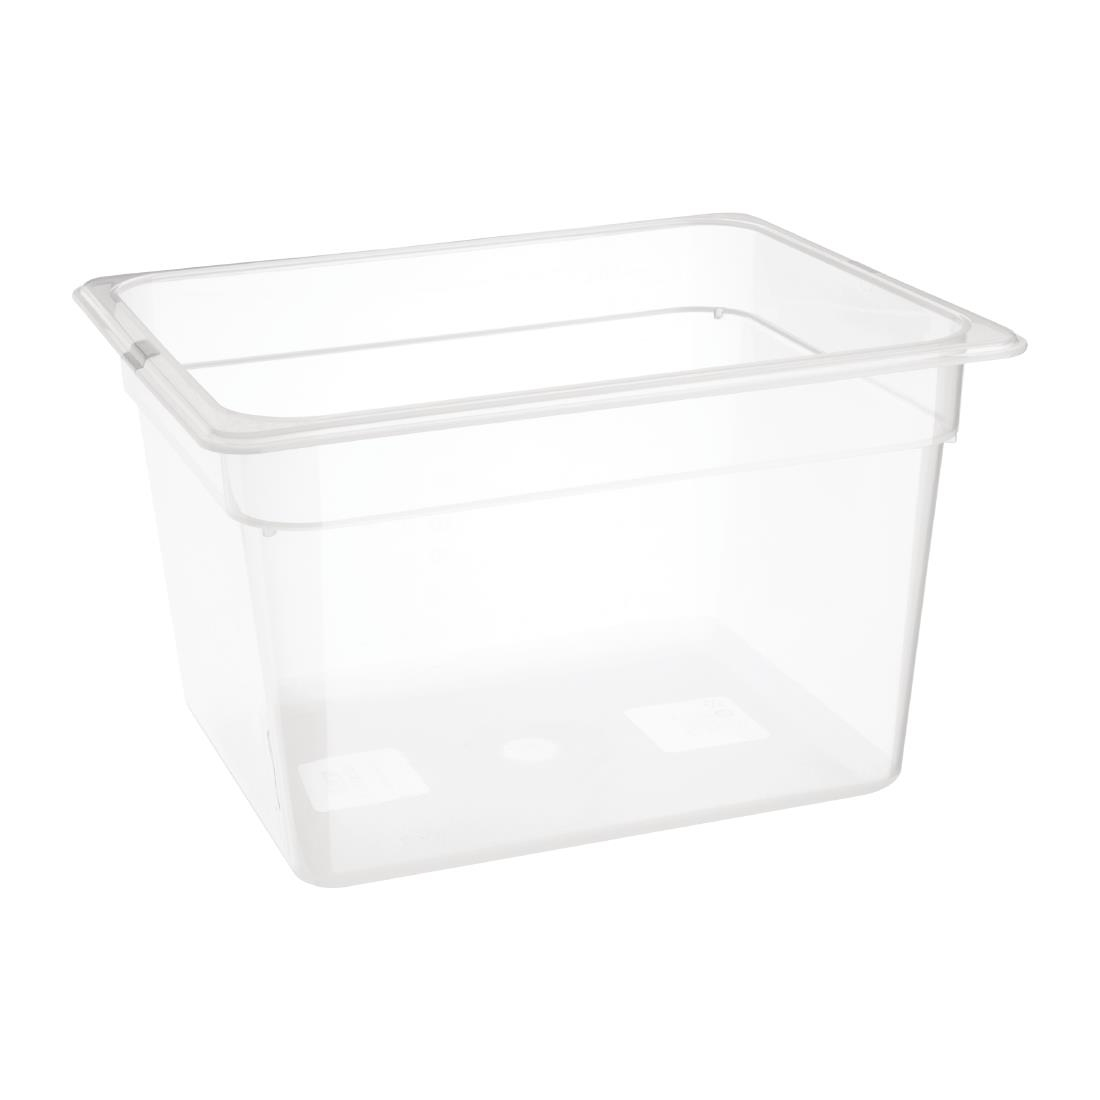 Image of Nisbets Essentials Polypropylene 1/2 Gastronorm 200mm